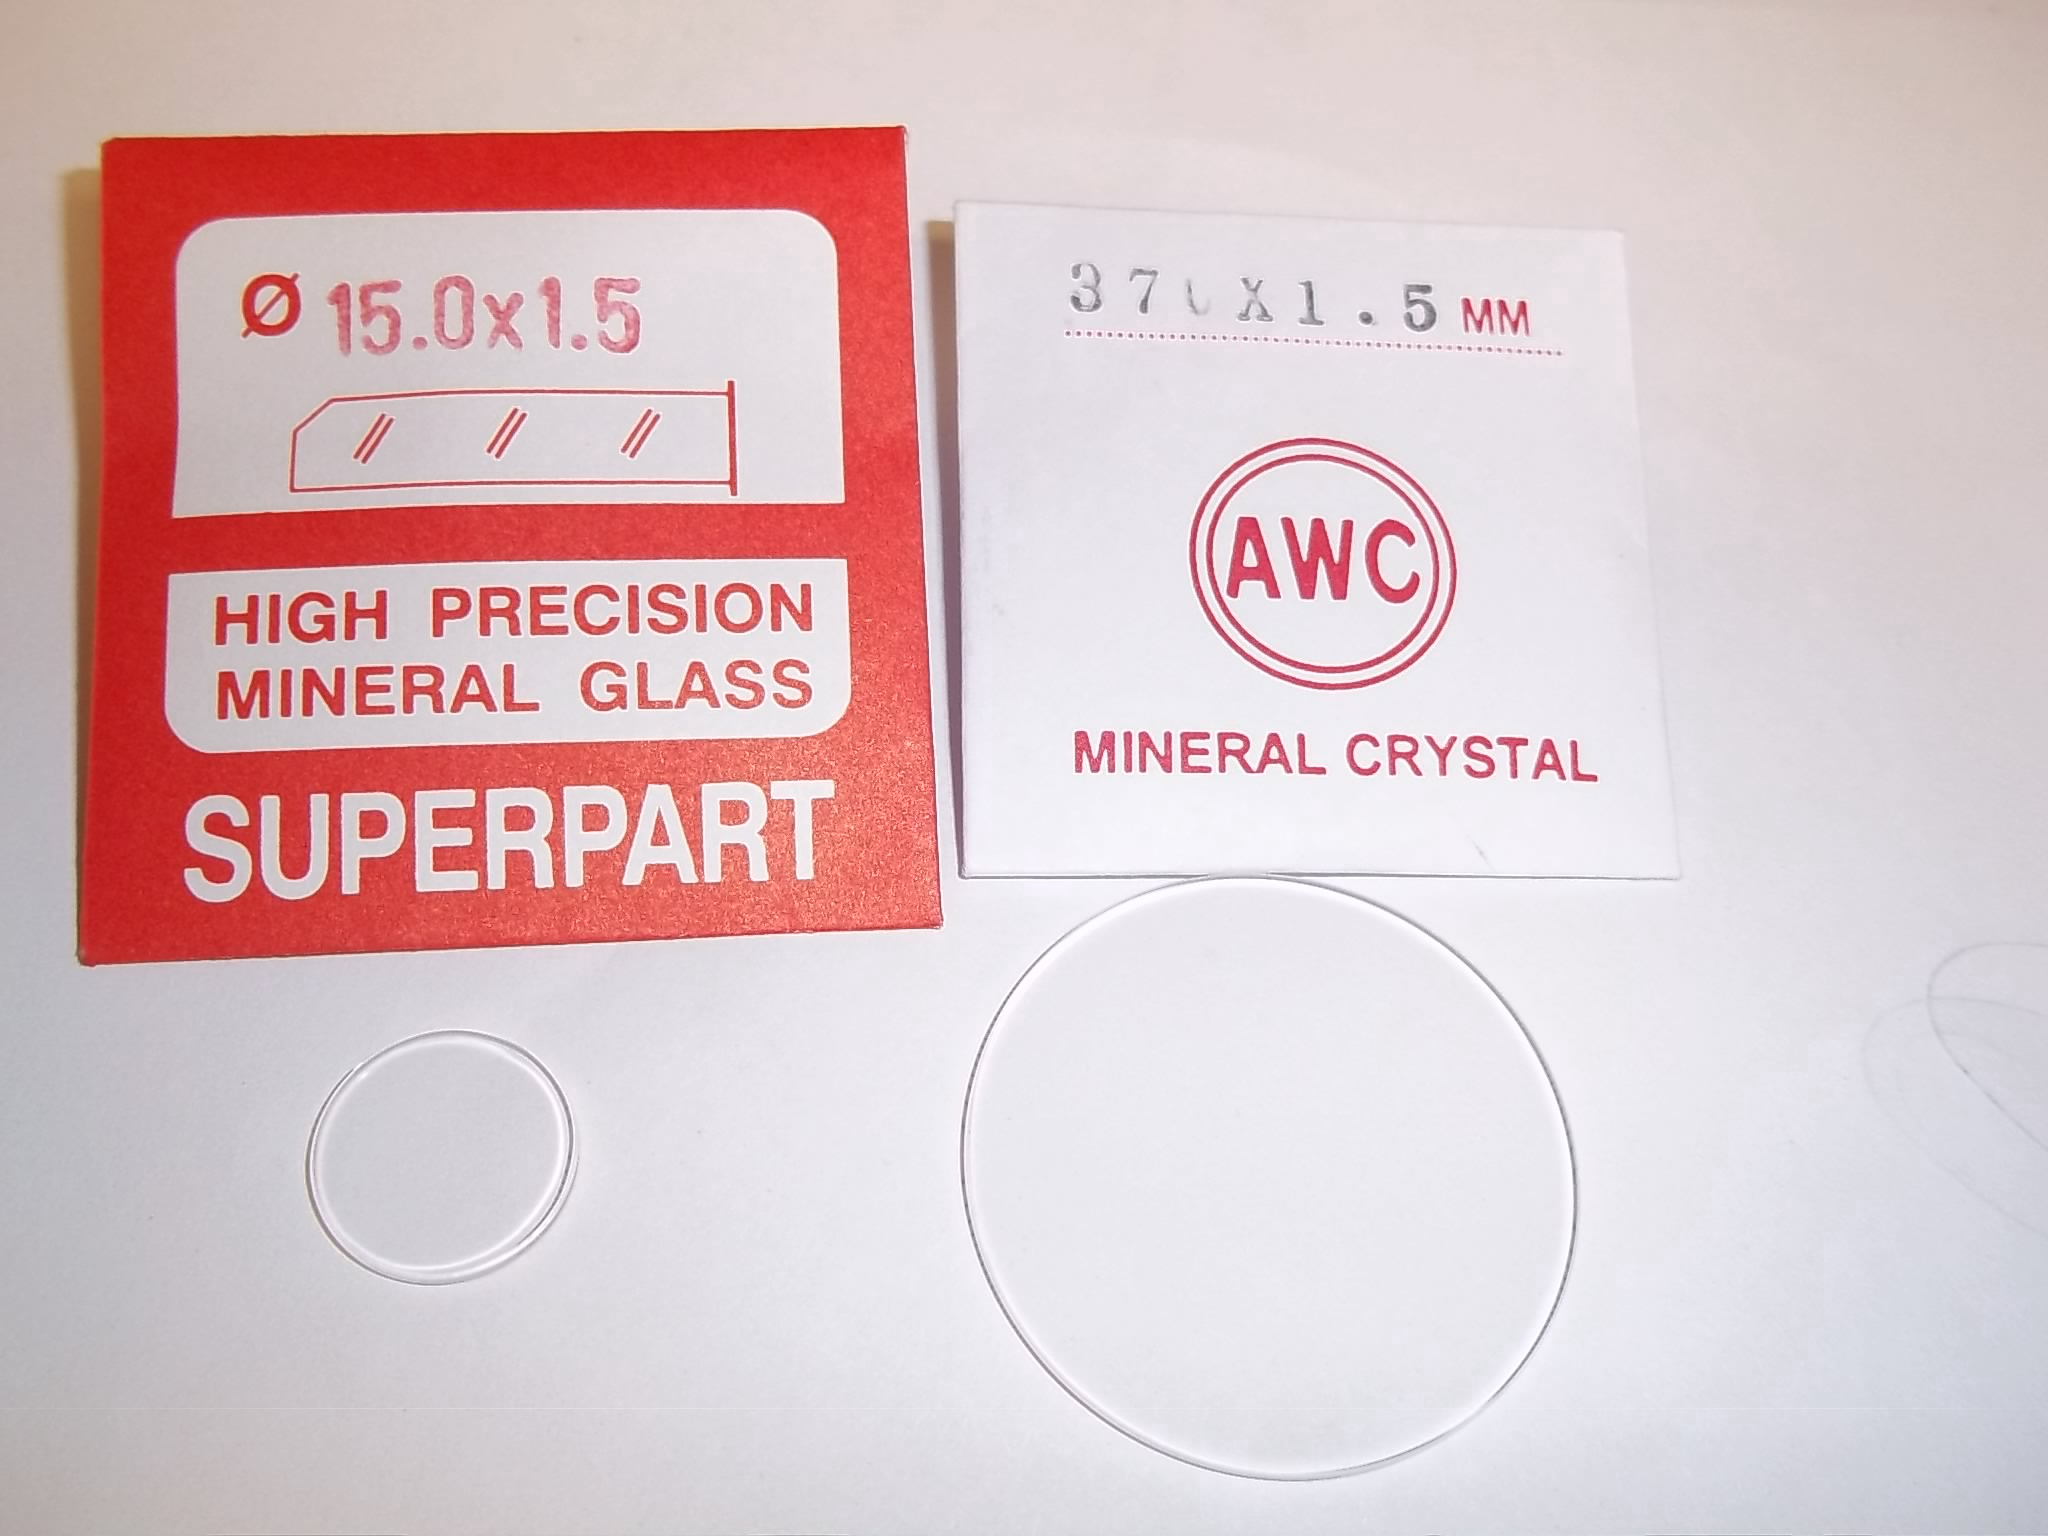 SMG15.0 to SMG37.0  Round Flat Mineral Glass Crystal 1.5mm thick